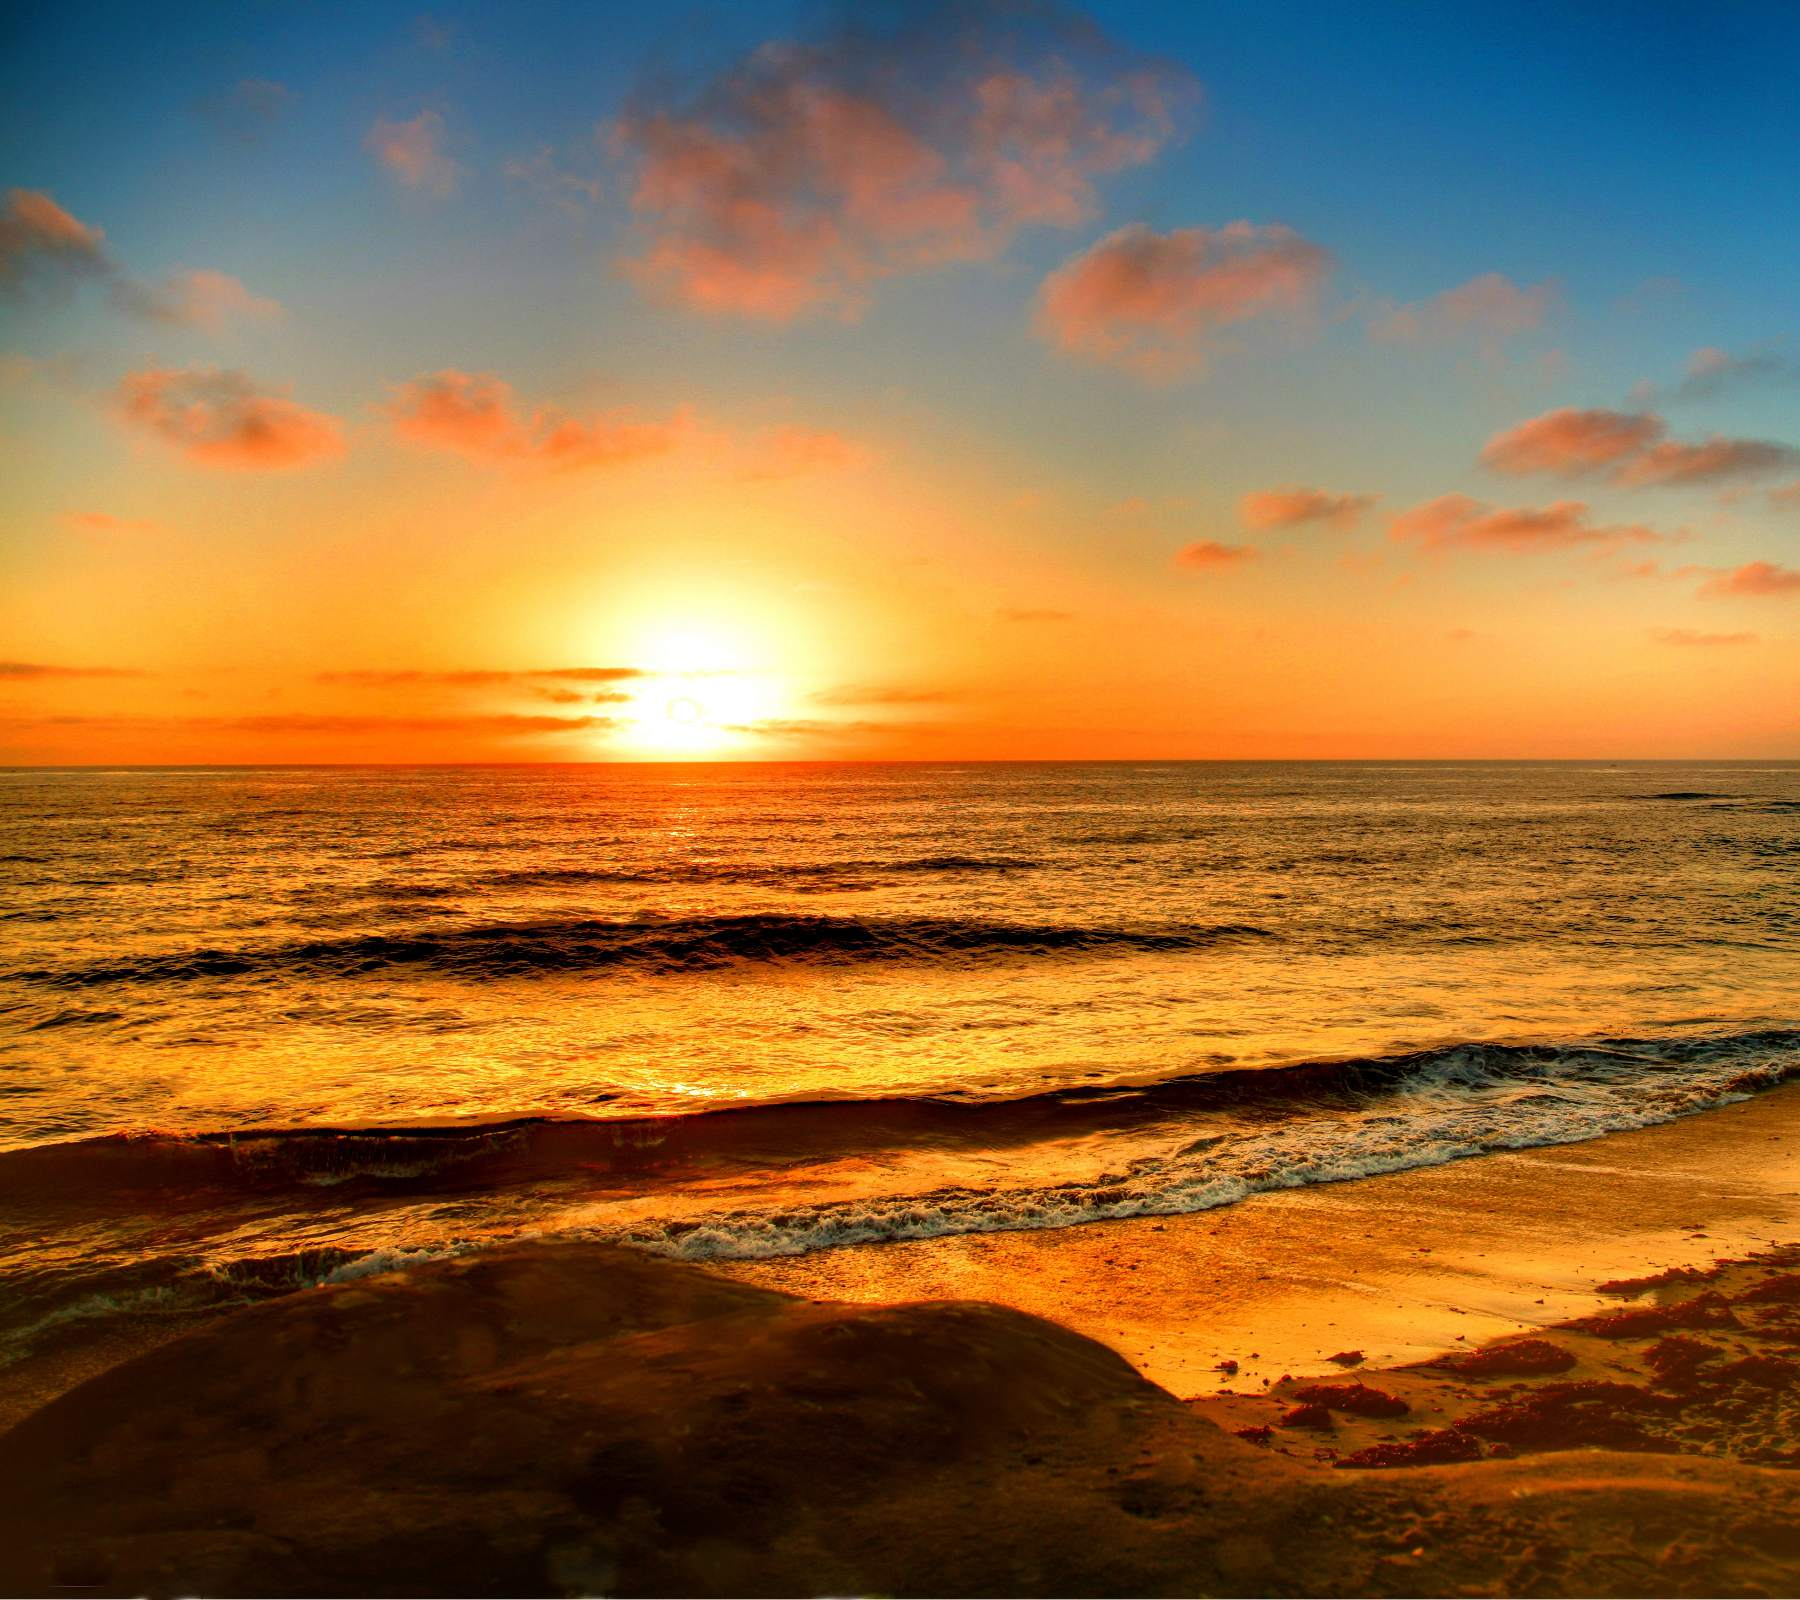 La Jolla Beach Sunset Background 1800x1600 Background Image Wallpaper 1800x1600